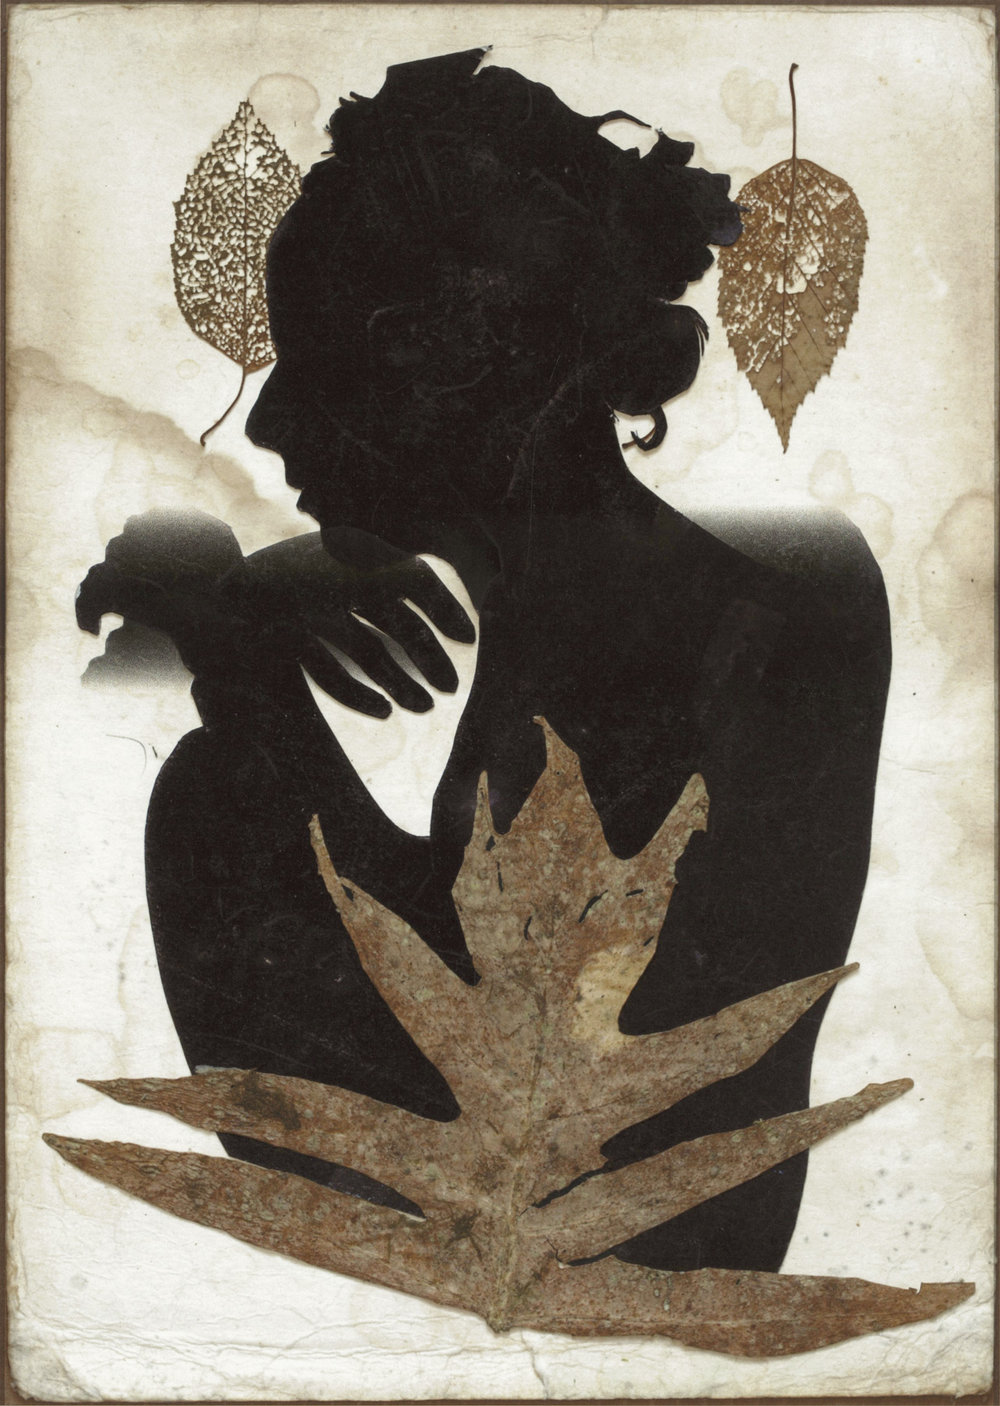 Edith in Panama with Three Leaves, 2015, digital inkjet print. © Emmet and Edith Gowin; courtesy Pace/MacGill Gallery, New York